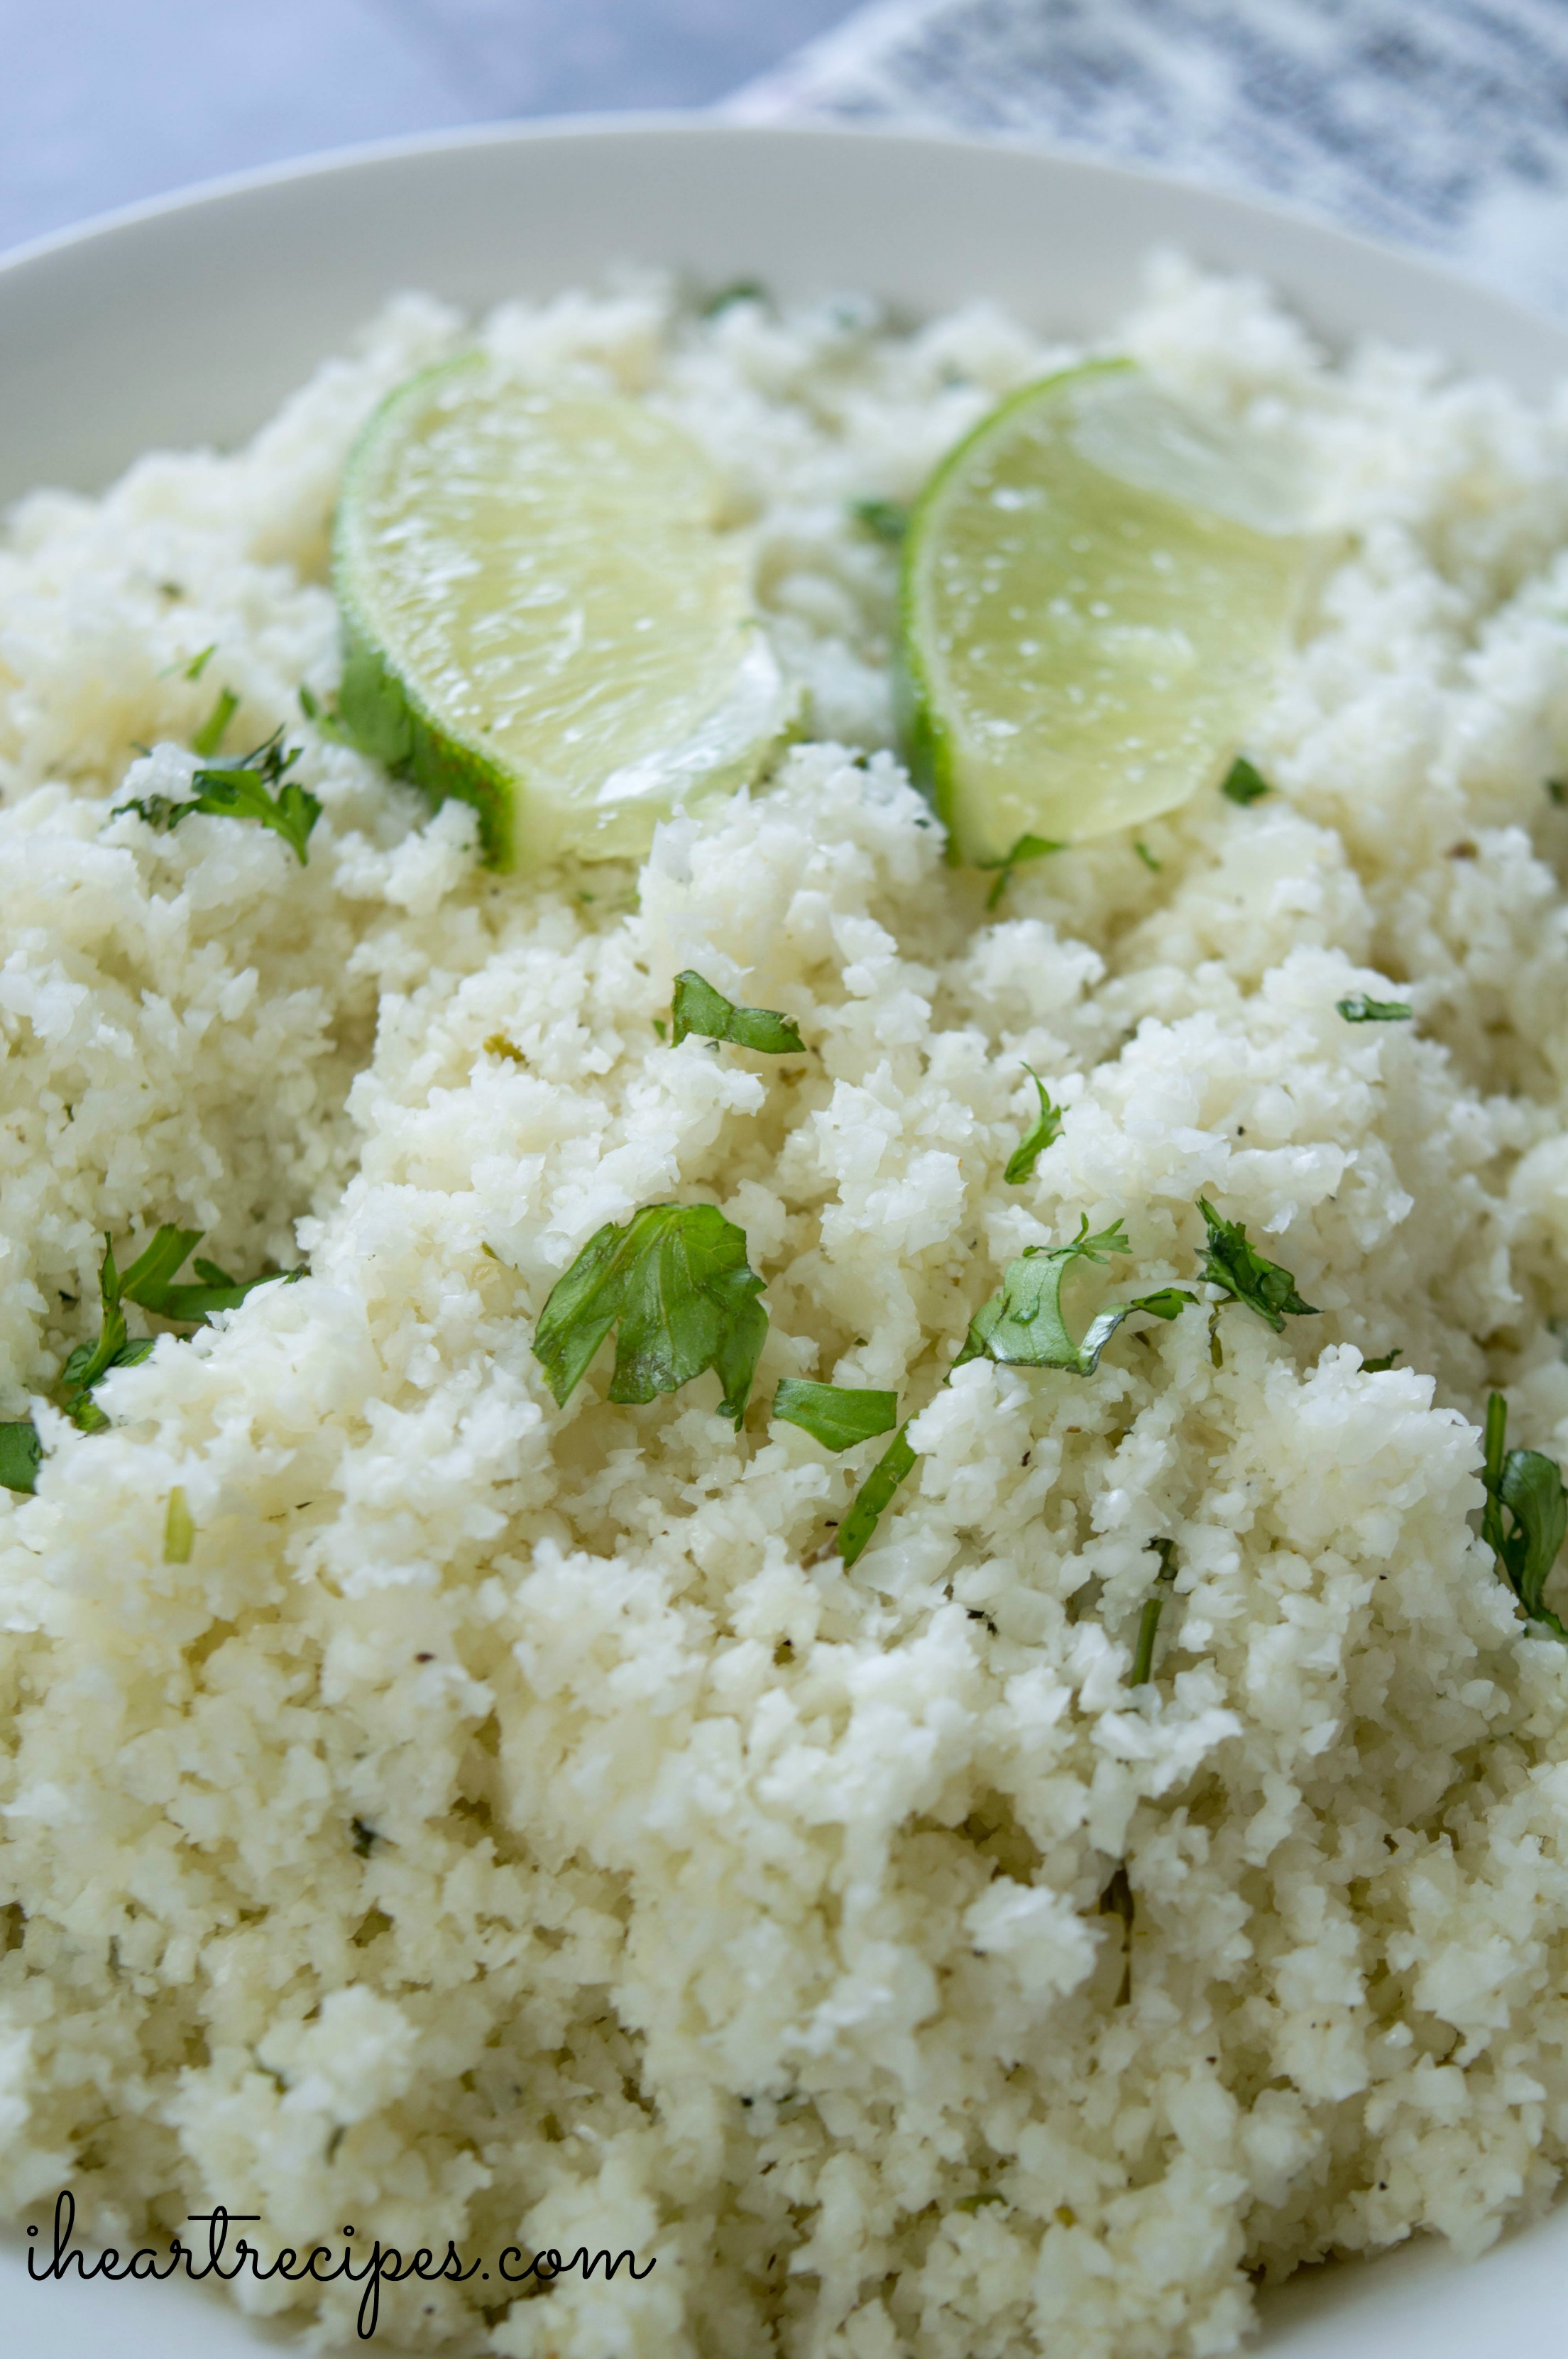 Voila! The perfect dish of cauliflower rice!